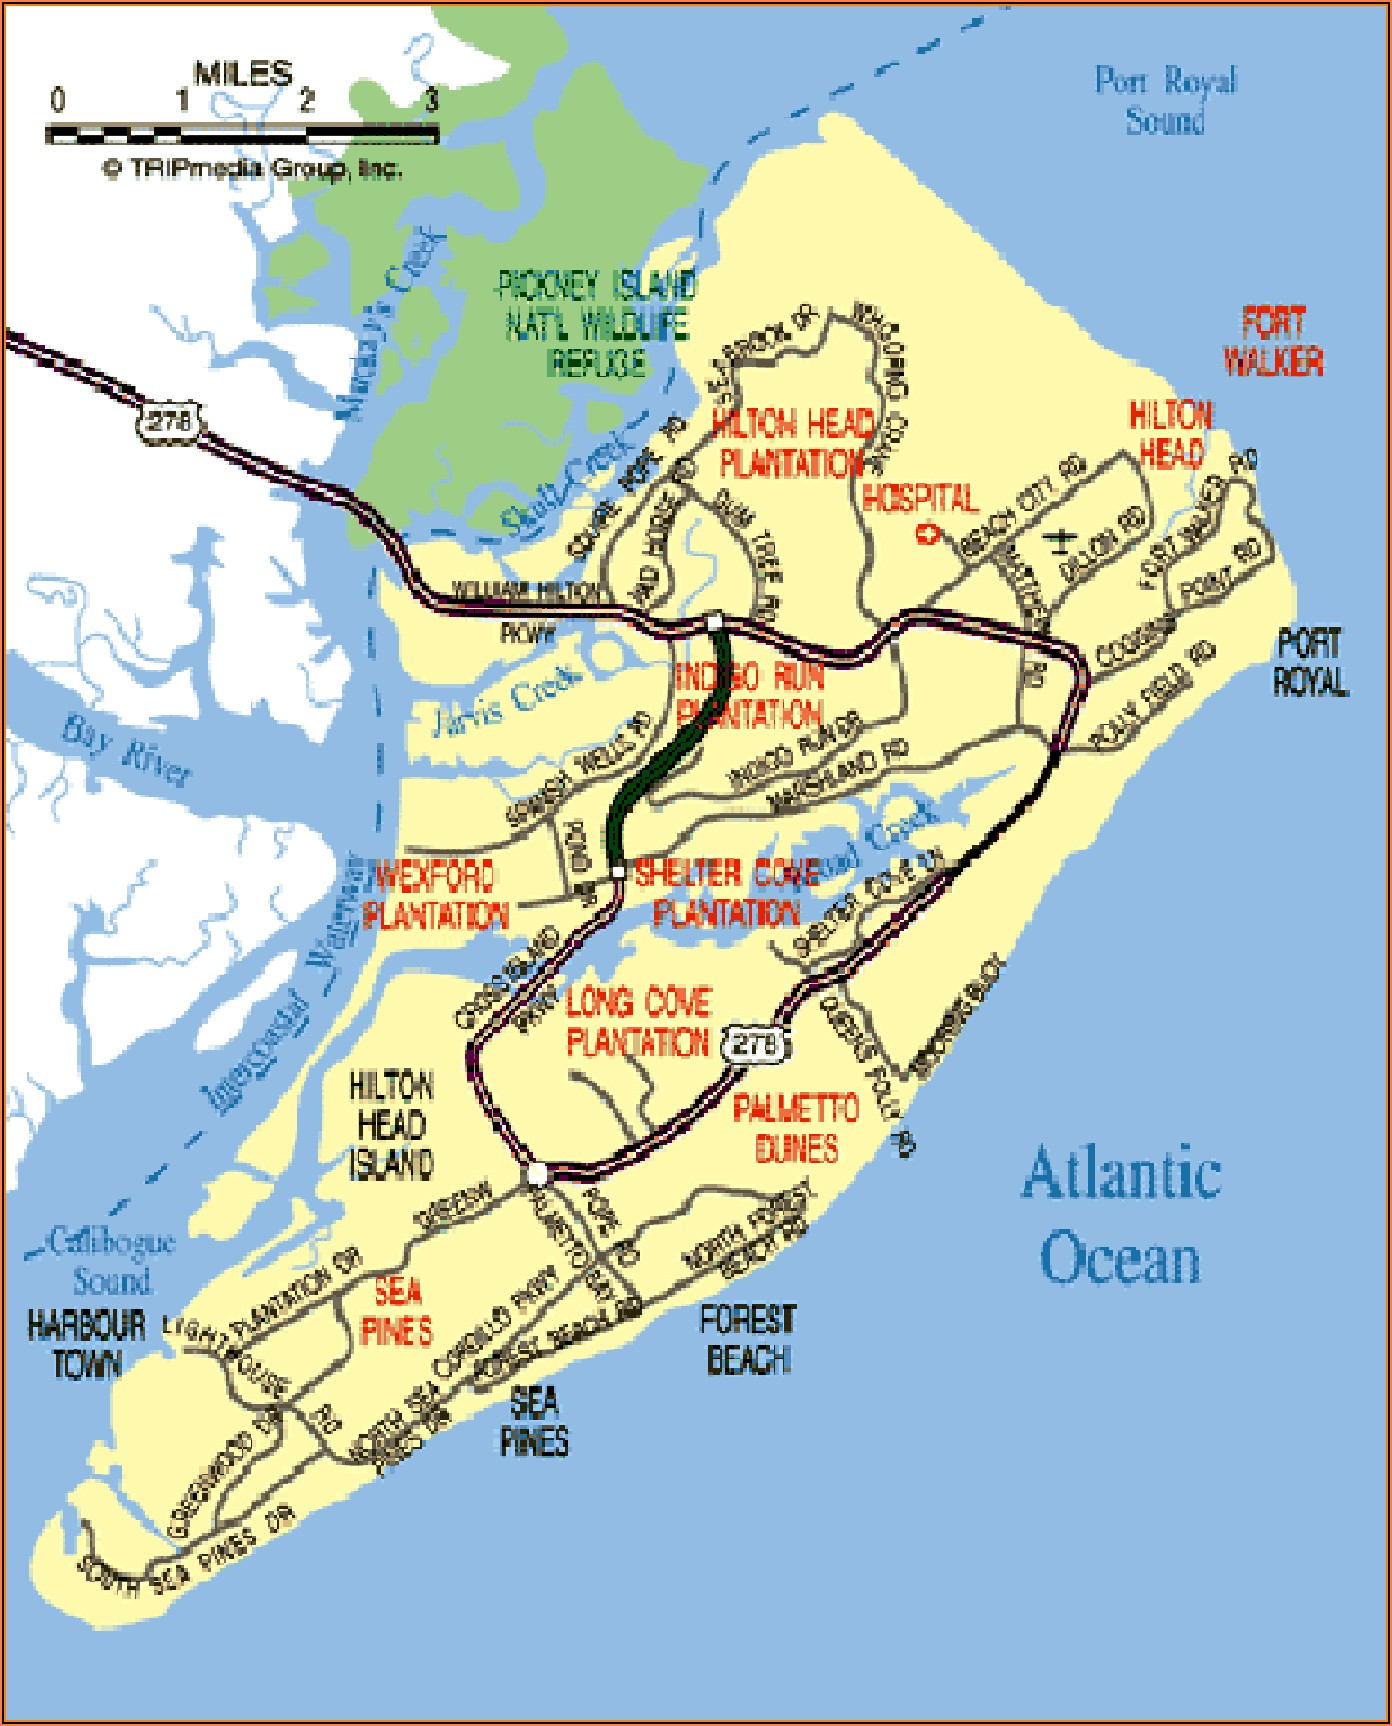 Map Of Hilton Head Island And Surrounding Area